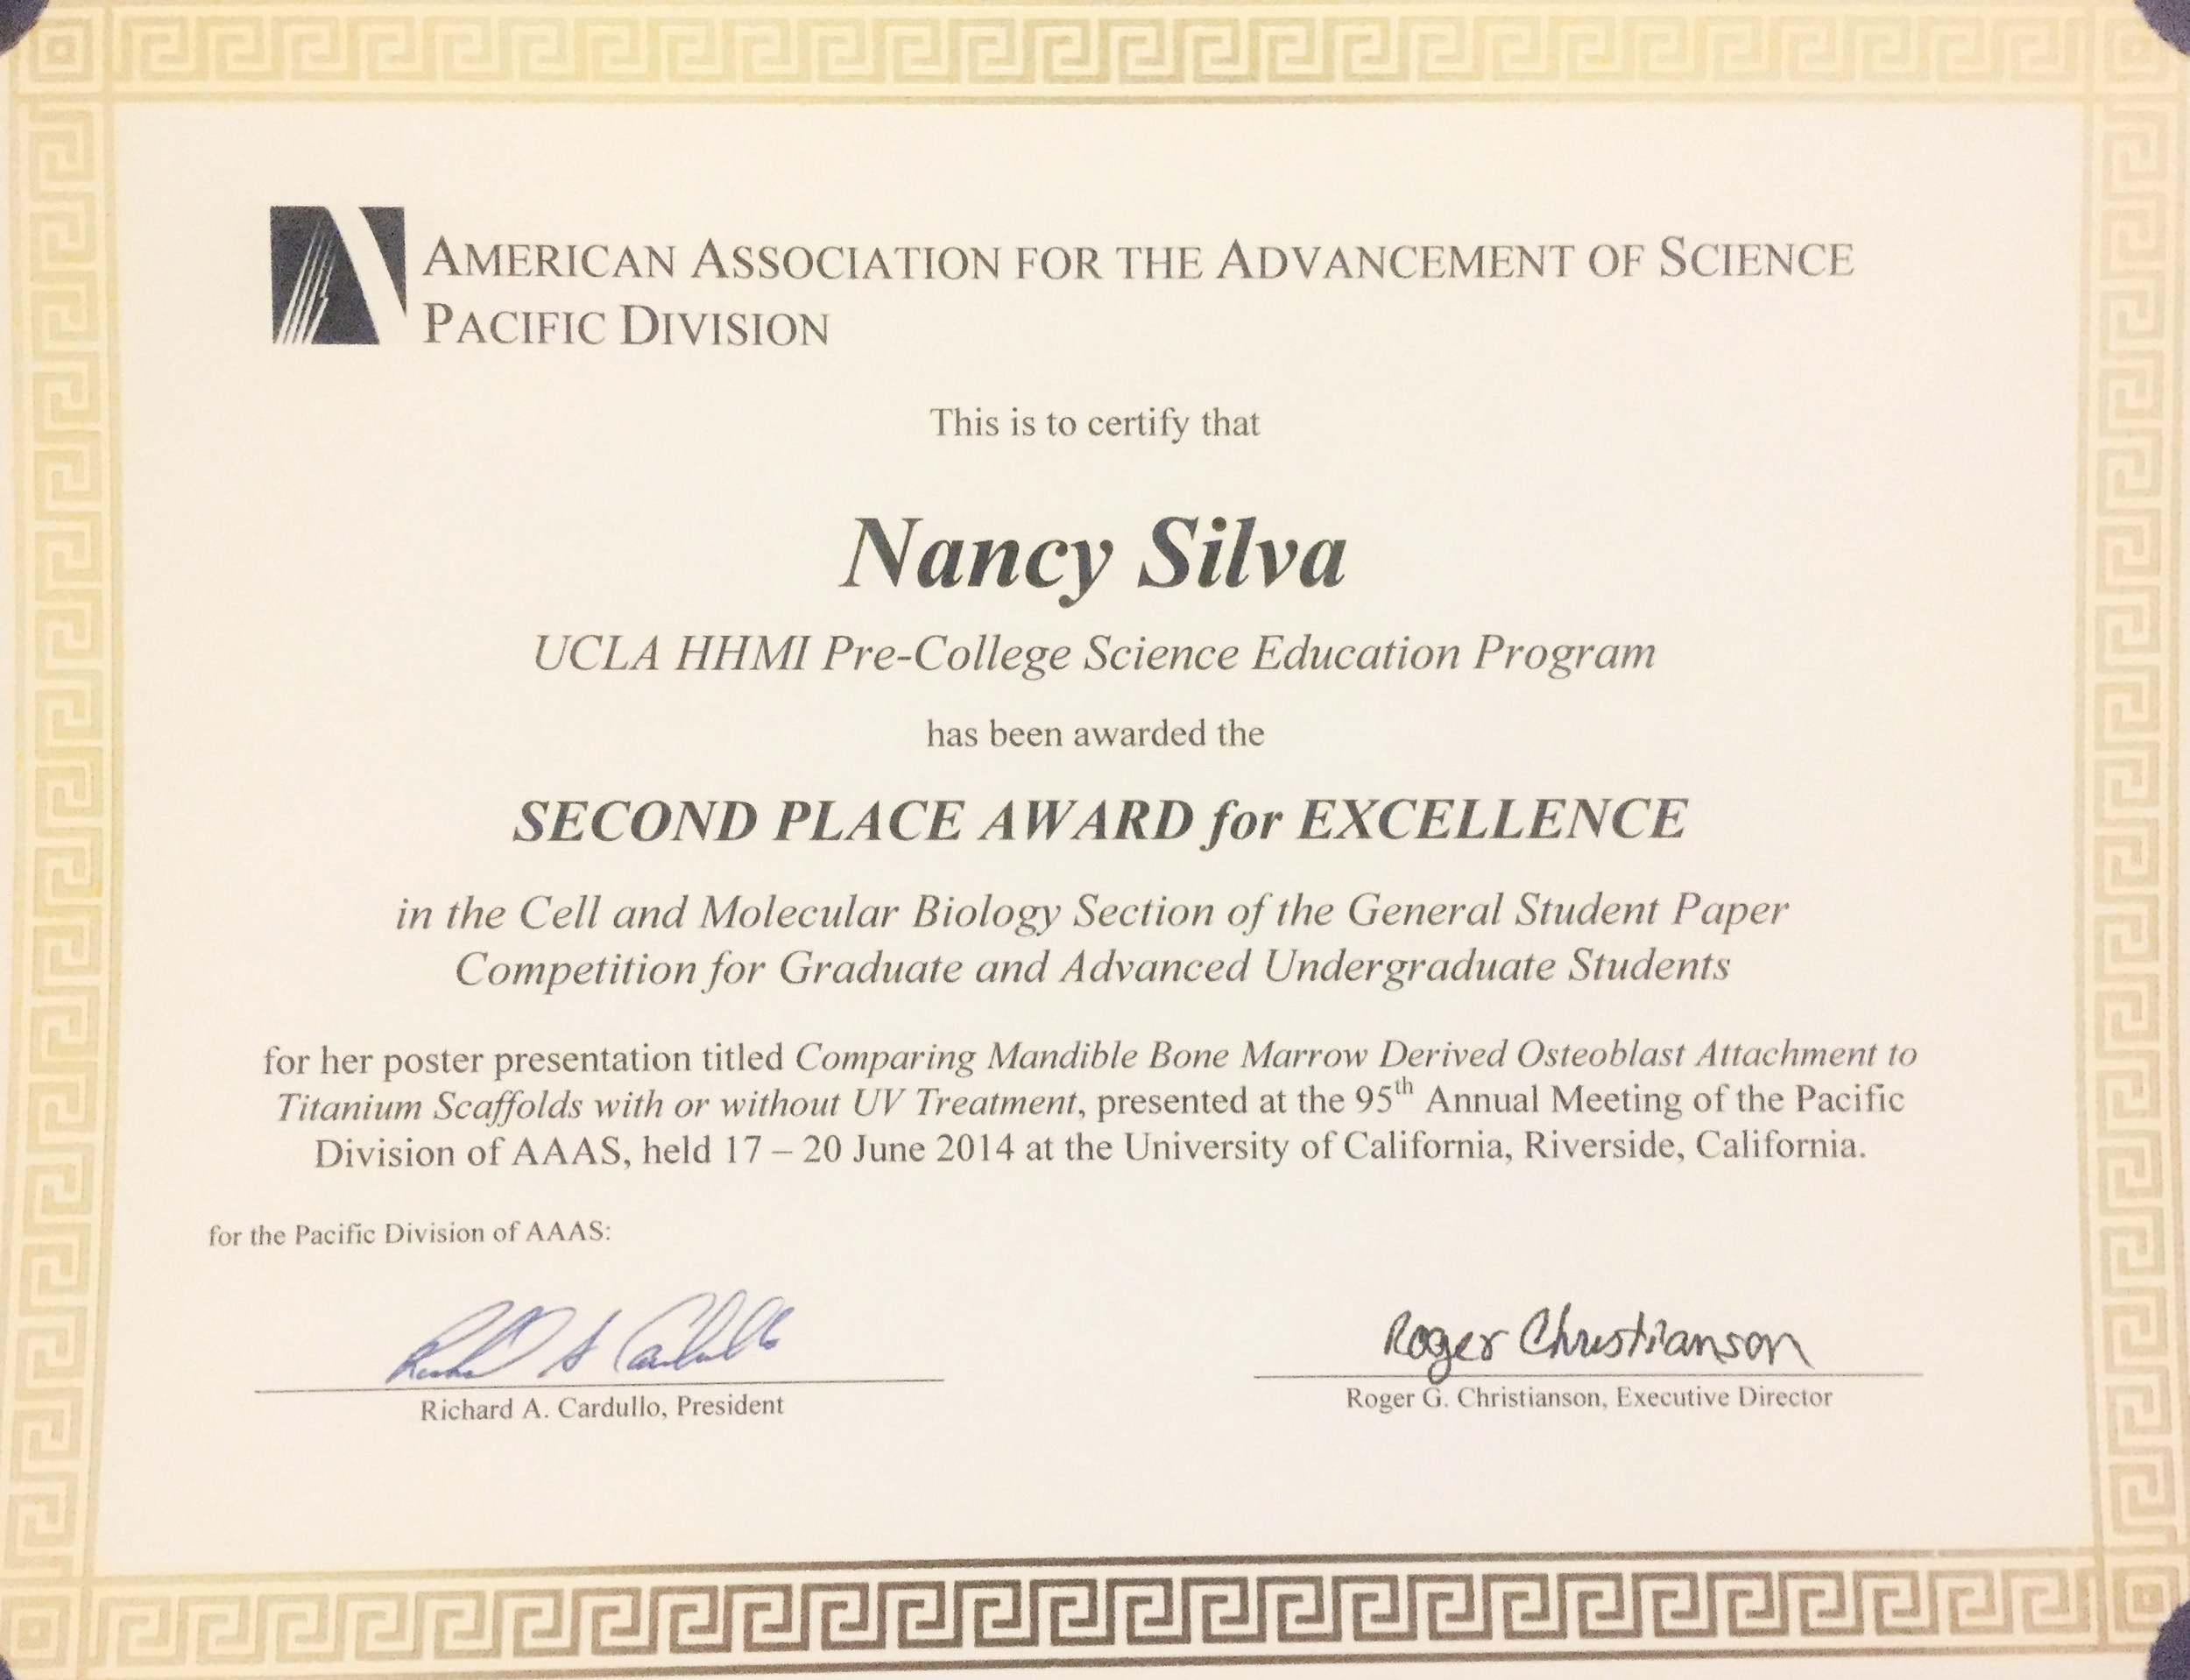 Ms Nancy Silva and Ms Maria Sierra Asian B. Balatan in Ogawa Lab received a Student Award of Excellence at the AAAS (American Association of the Advancement of Science) Pacific Division Annual Meeting held at UC Riverside, taking Second Place in the Cell and Molecular Biology Section.